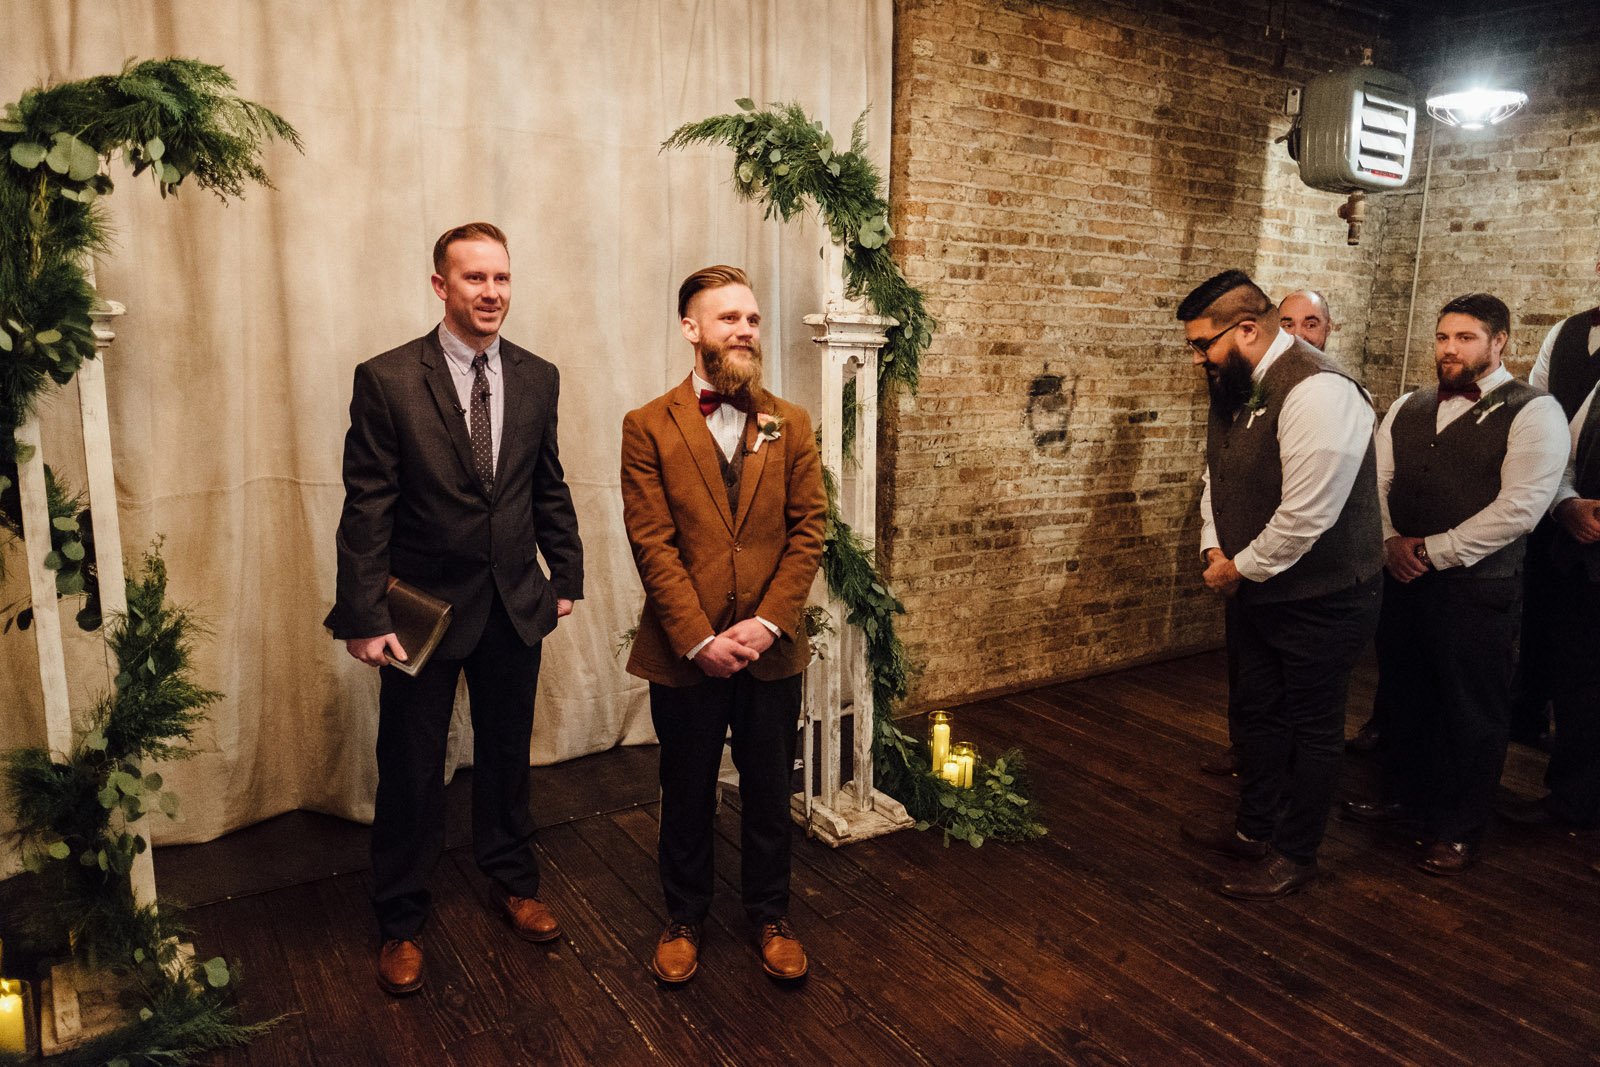 The Haight Wedding ceremony